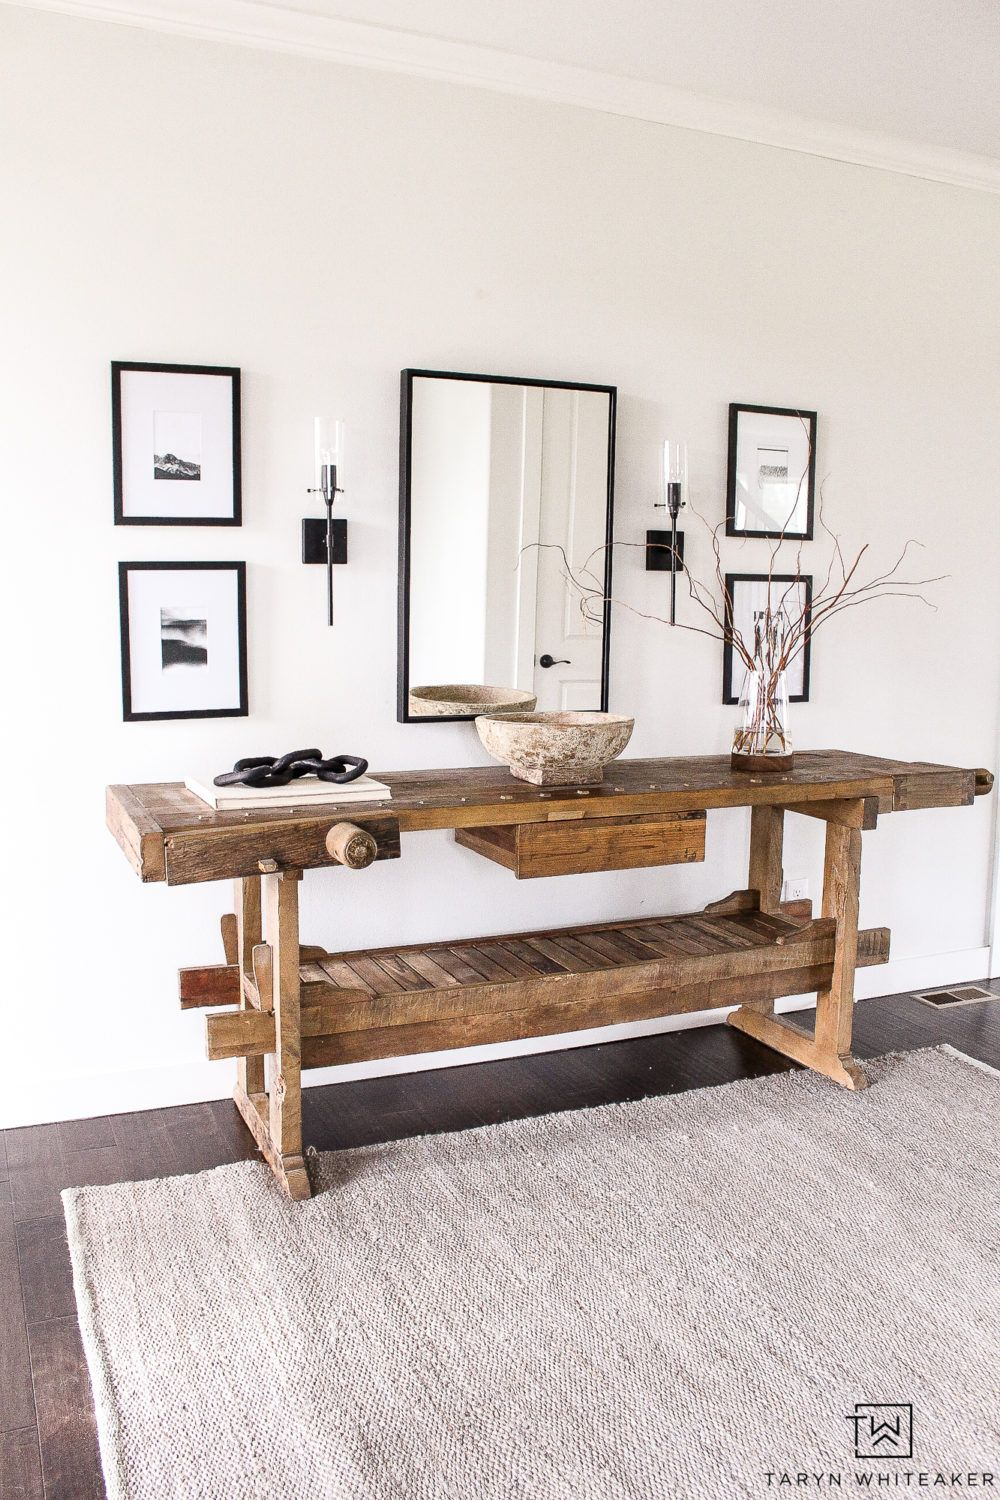 Restoration Hardware Inspired Entry Way - Taryn Whiteaker